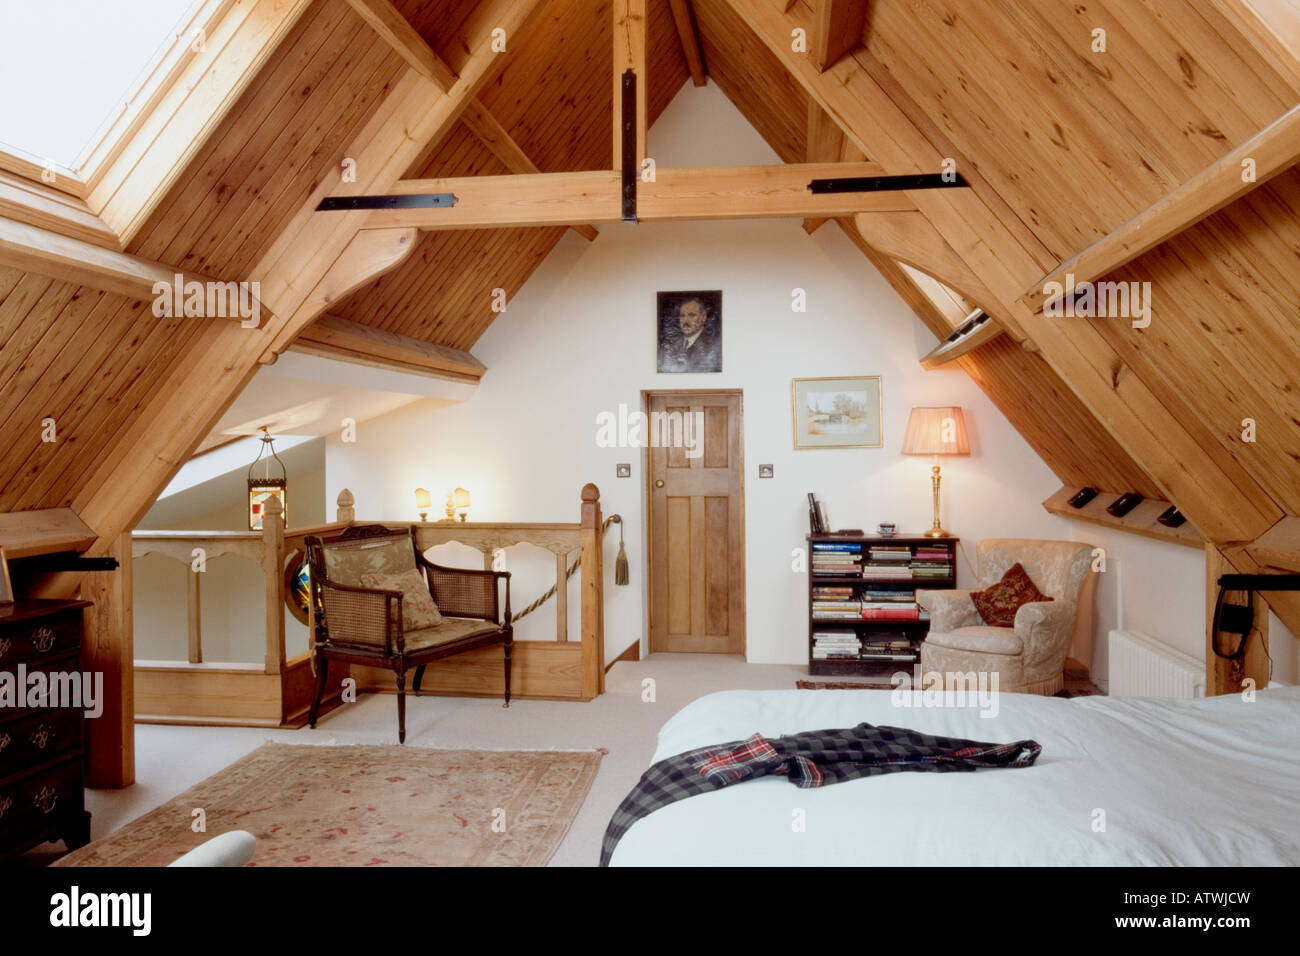 h usliche interieur modernen holz get felte decke dachgeschoss schlafzimmer stockfoto bild. Black Bedroom Furniture Sets. Home Design Ideas